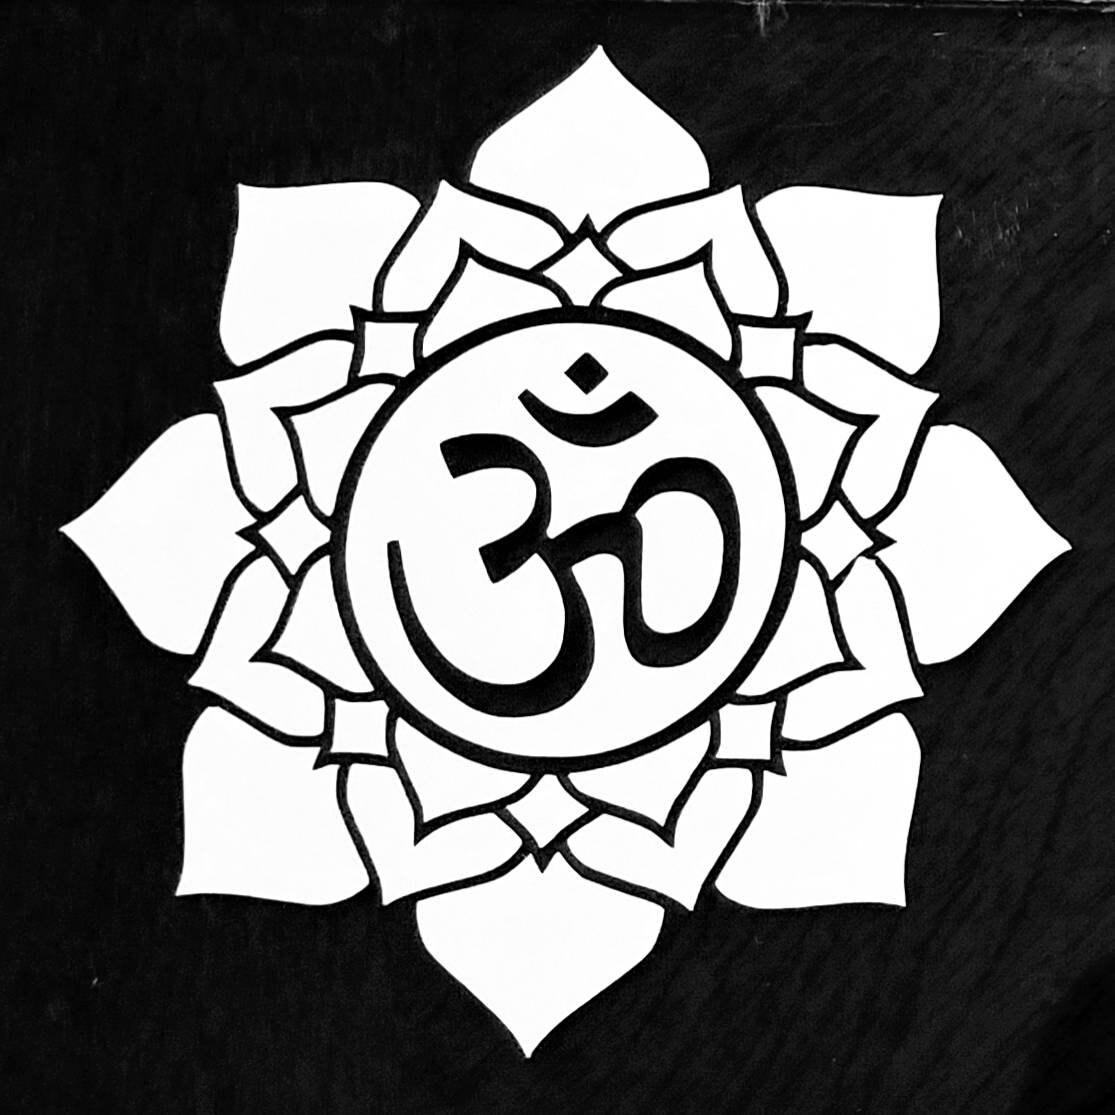 Lotus Flower With Om Symbol Car Window Decal Etsy